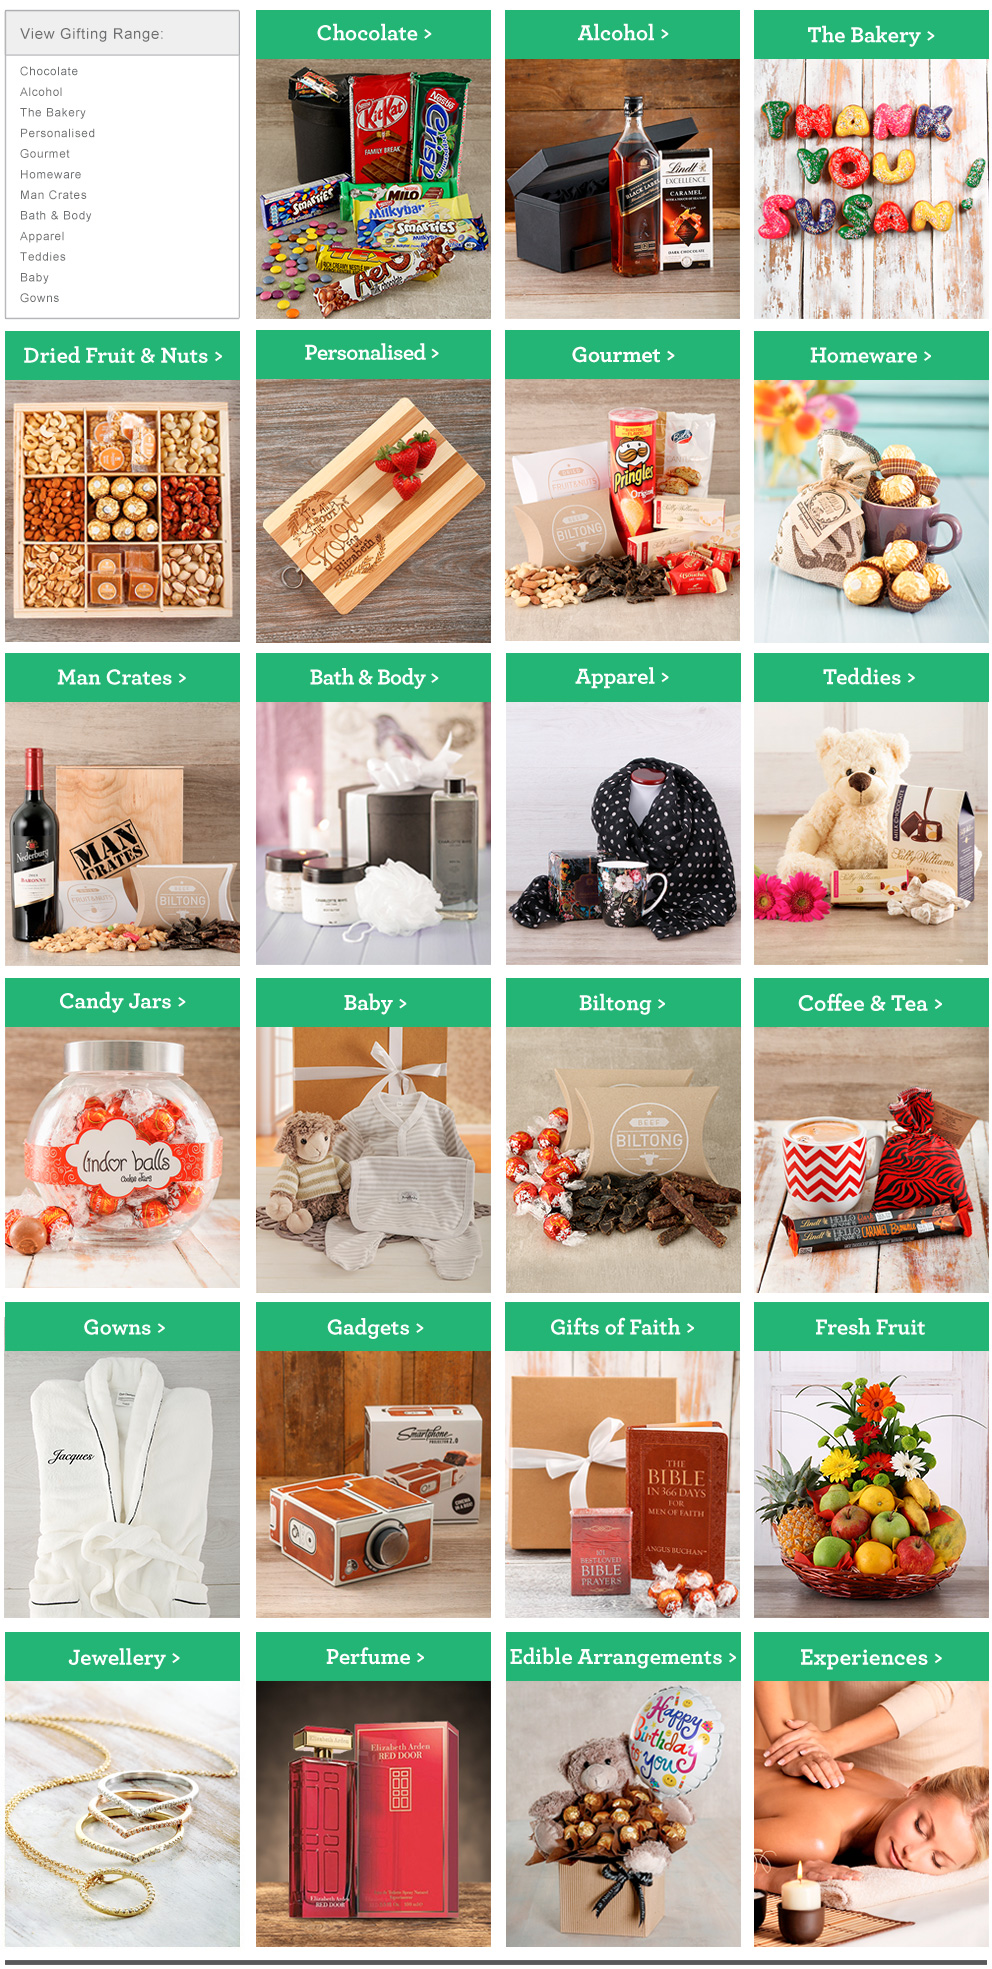 Shop gifting amazing gifts online netflorist has a wide range of fantastic gifting ideas to suit everyone birthday gifts weve got you covered delicious snack hampers negle Choice Image